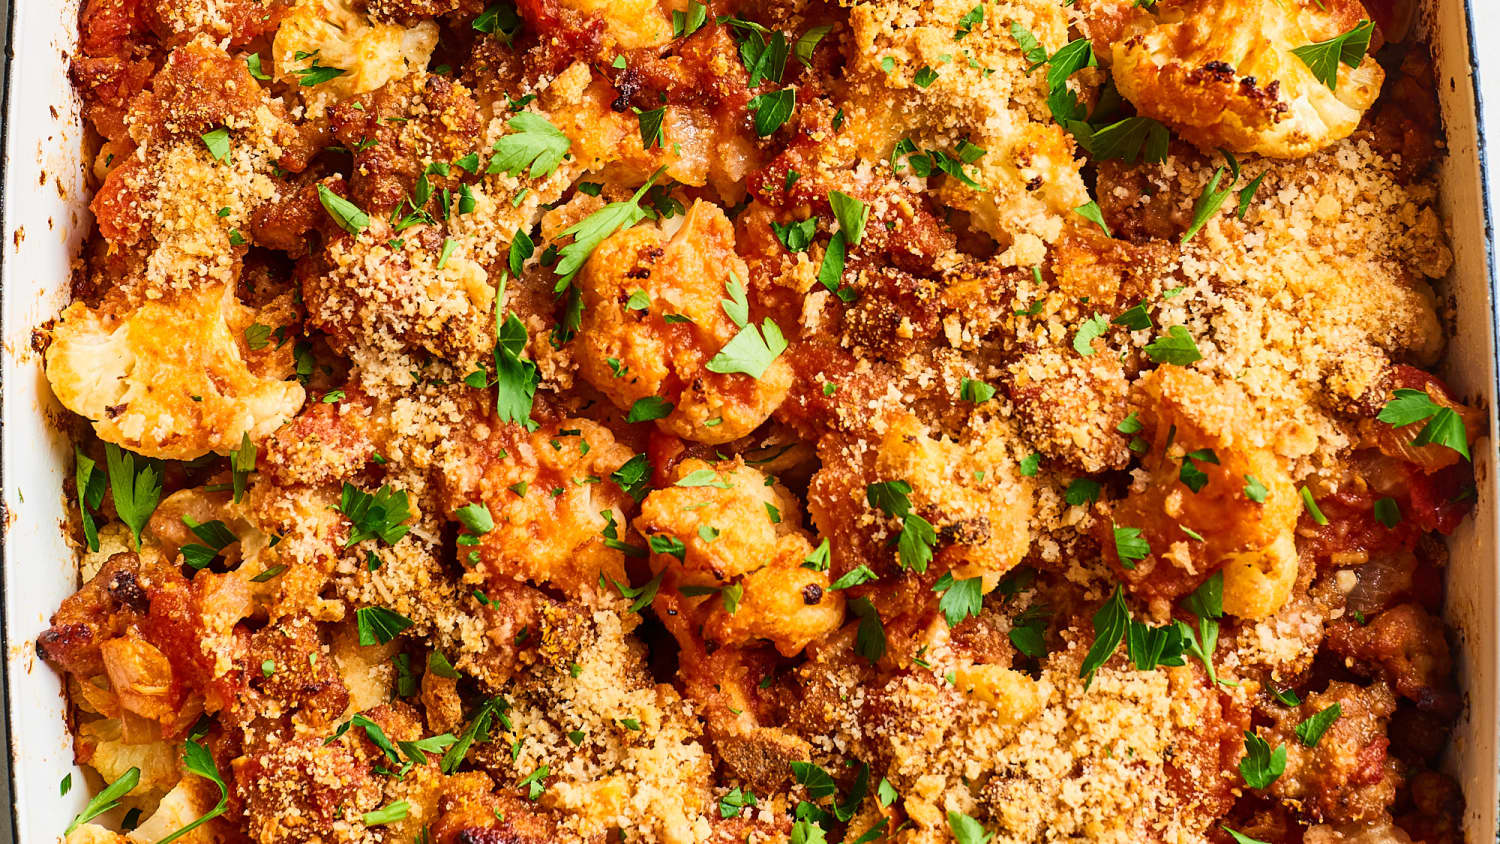 Cauliflower & Chicken Sausage Casserole